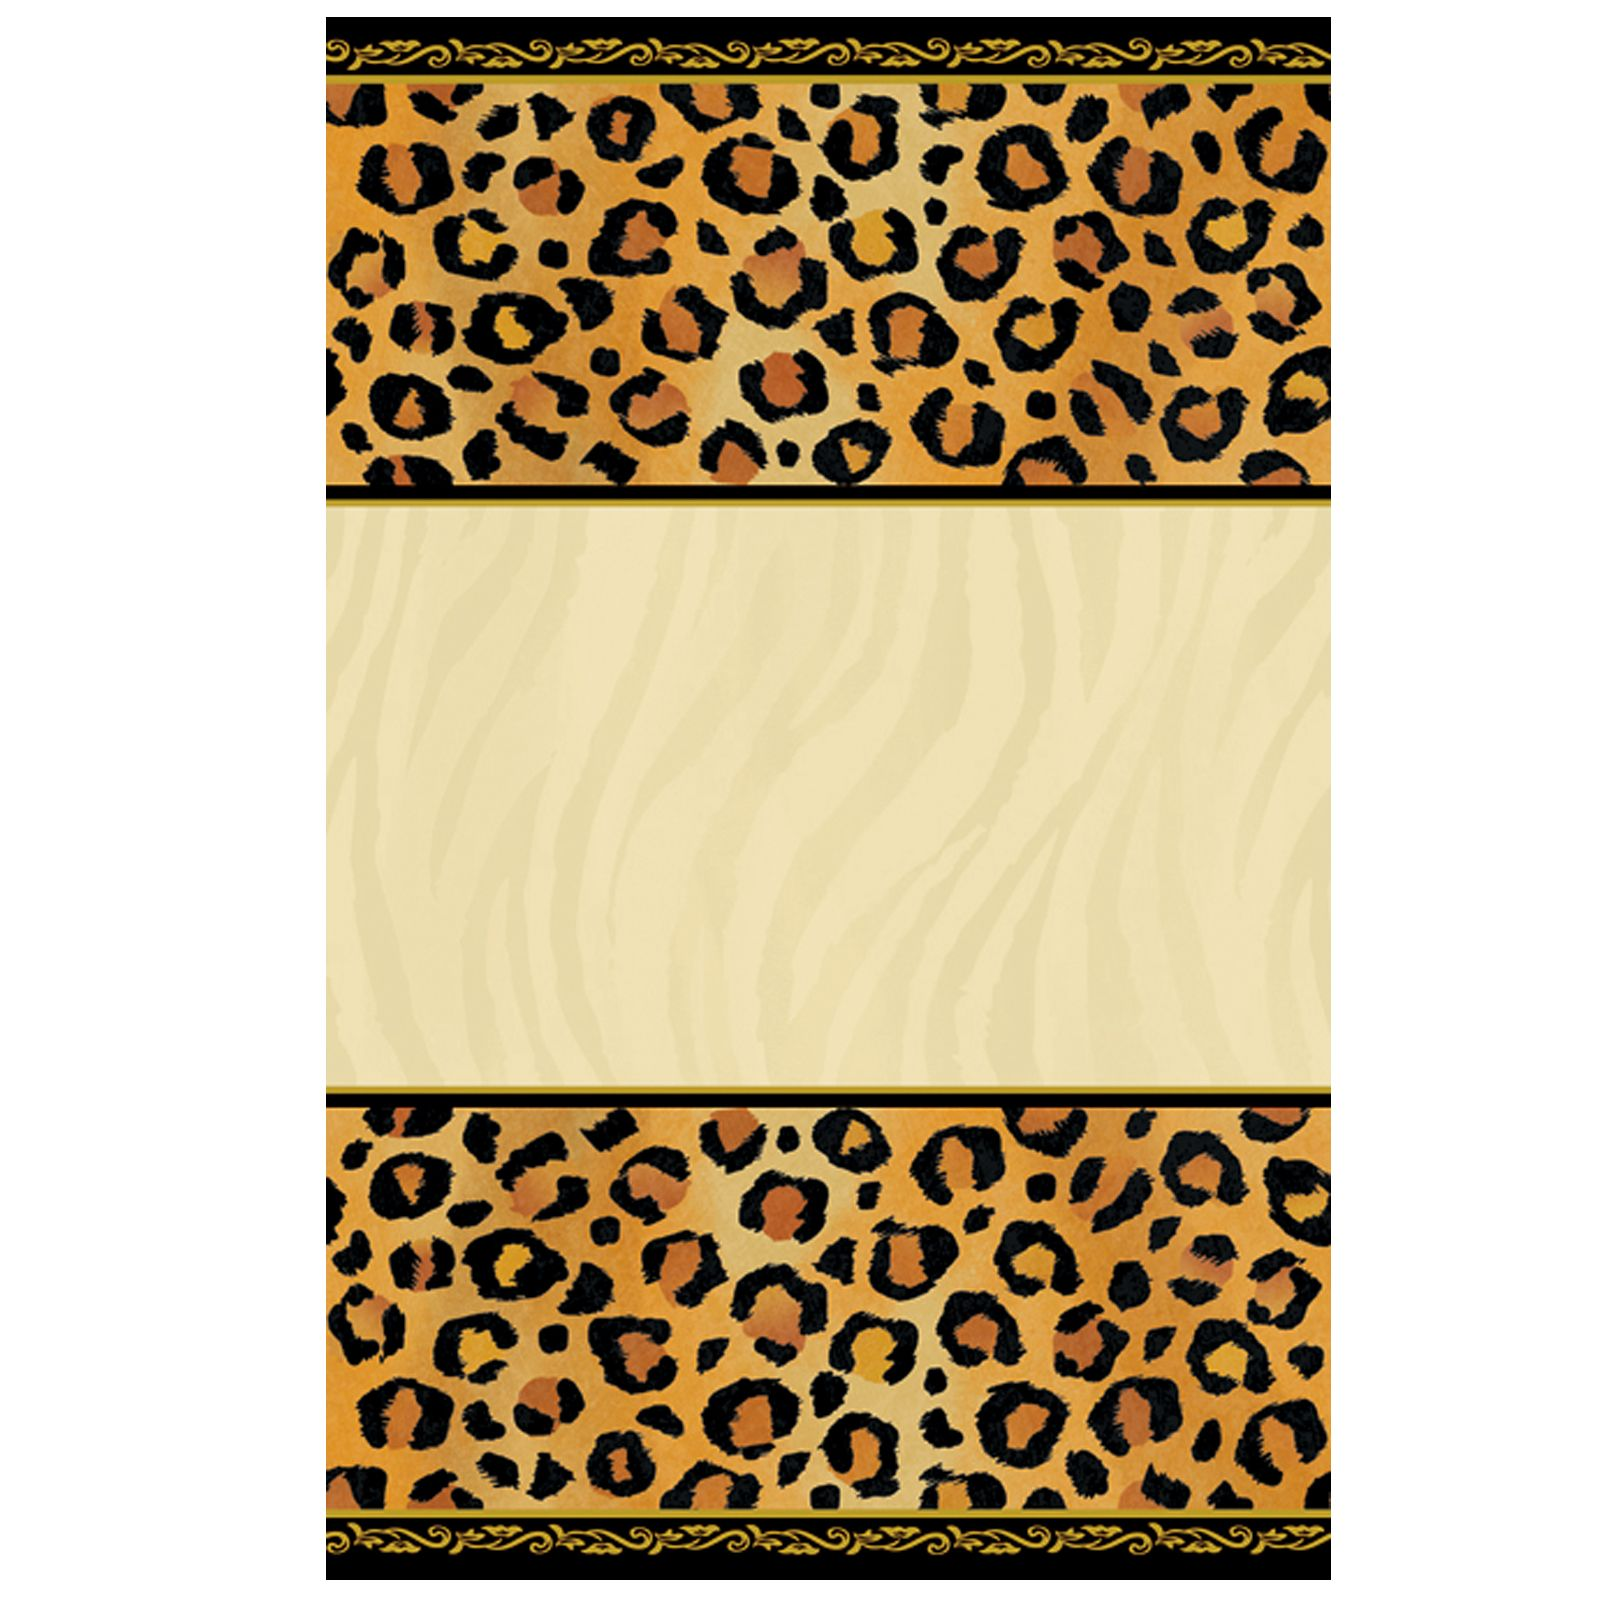 Leopard Print Invitations Printable Free Cakepins In